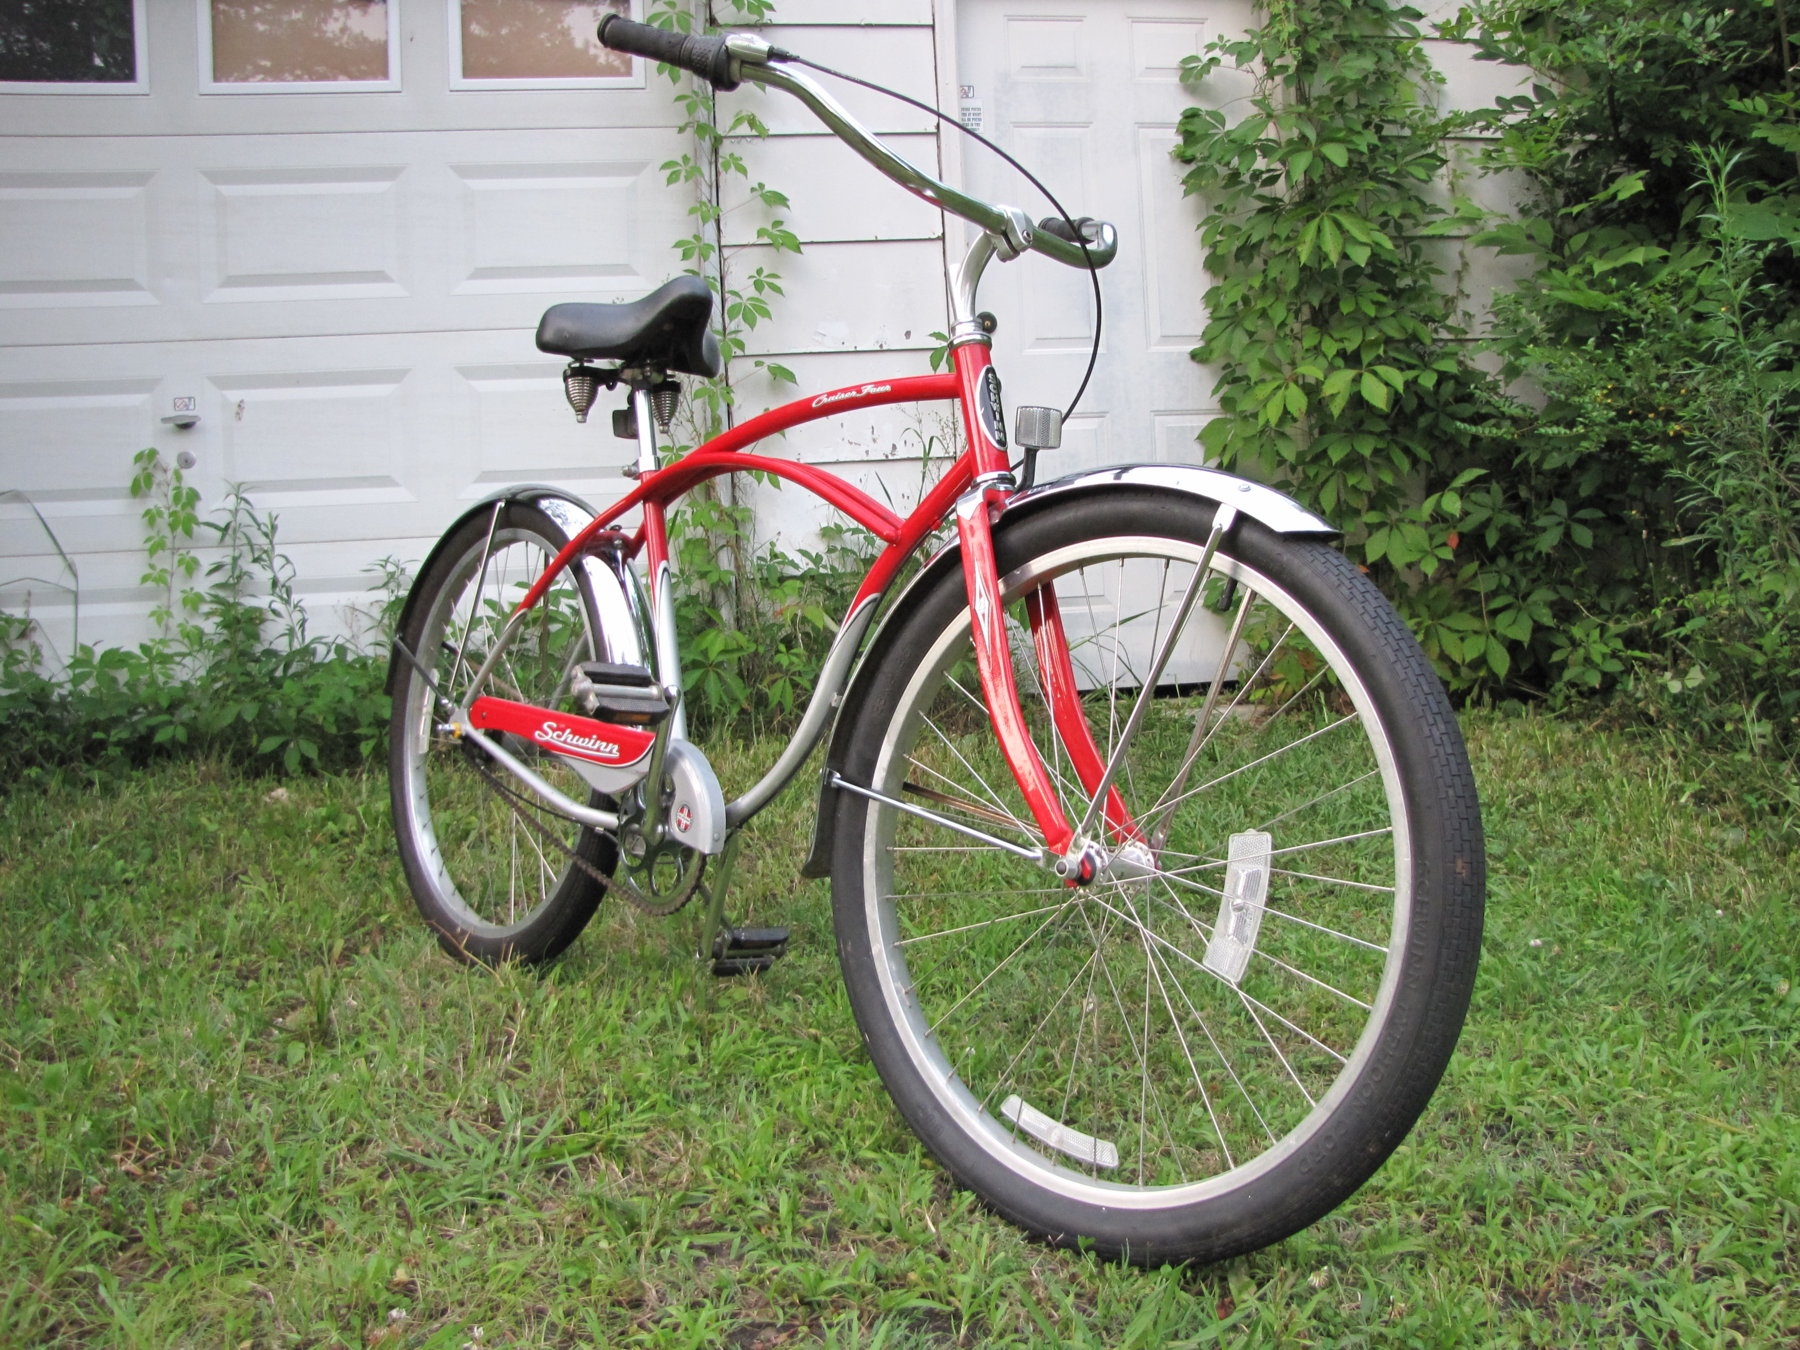 Schwinn Cruiser 6 - $75 | The Classic and Antique Bicycle Exchange